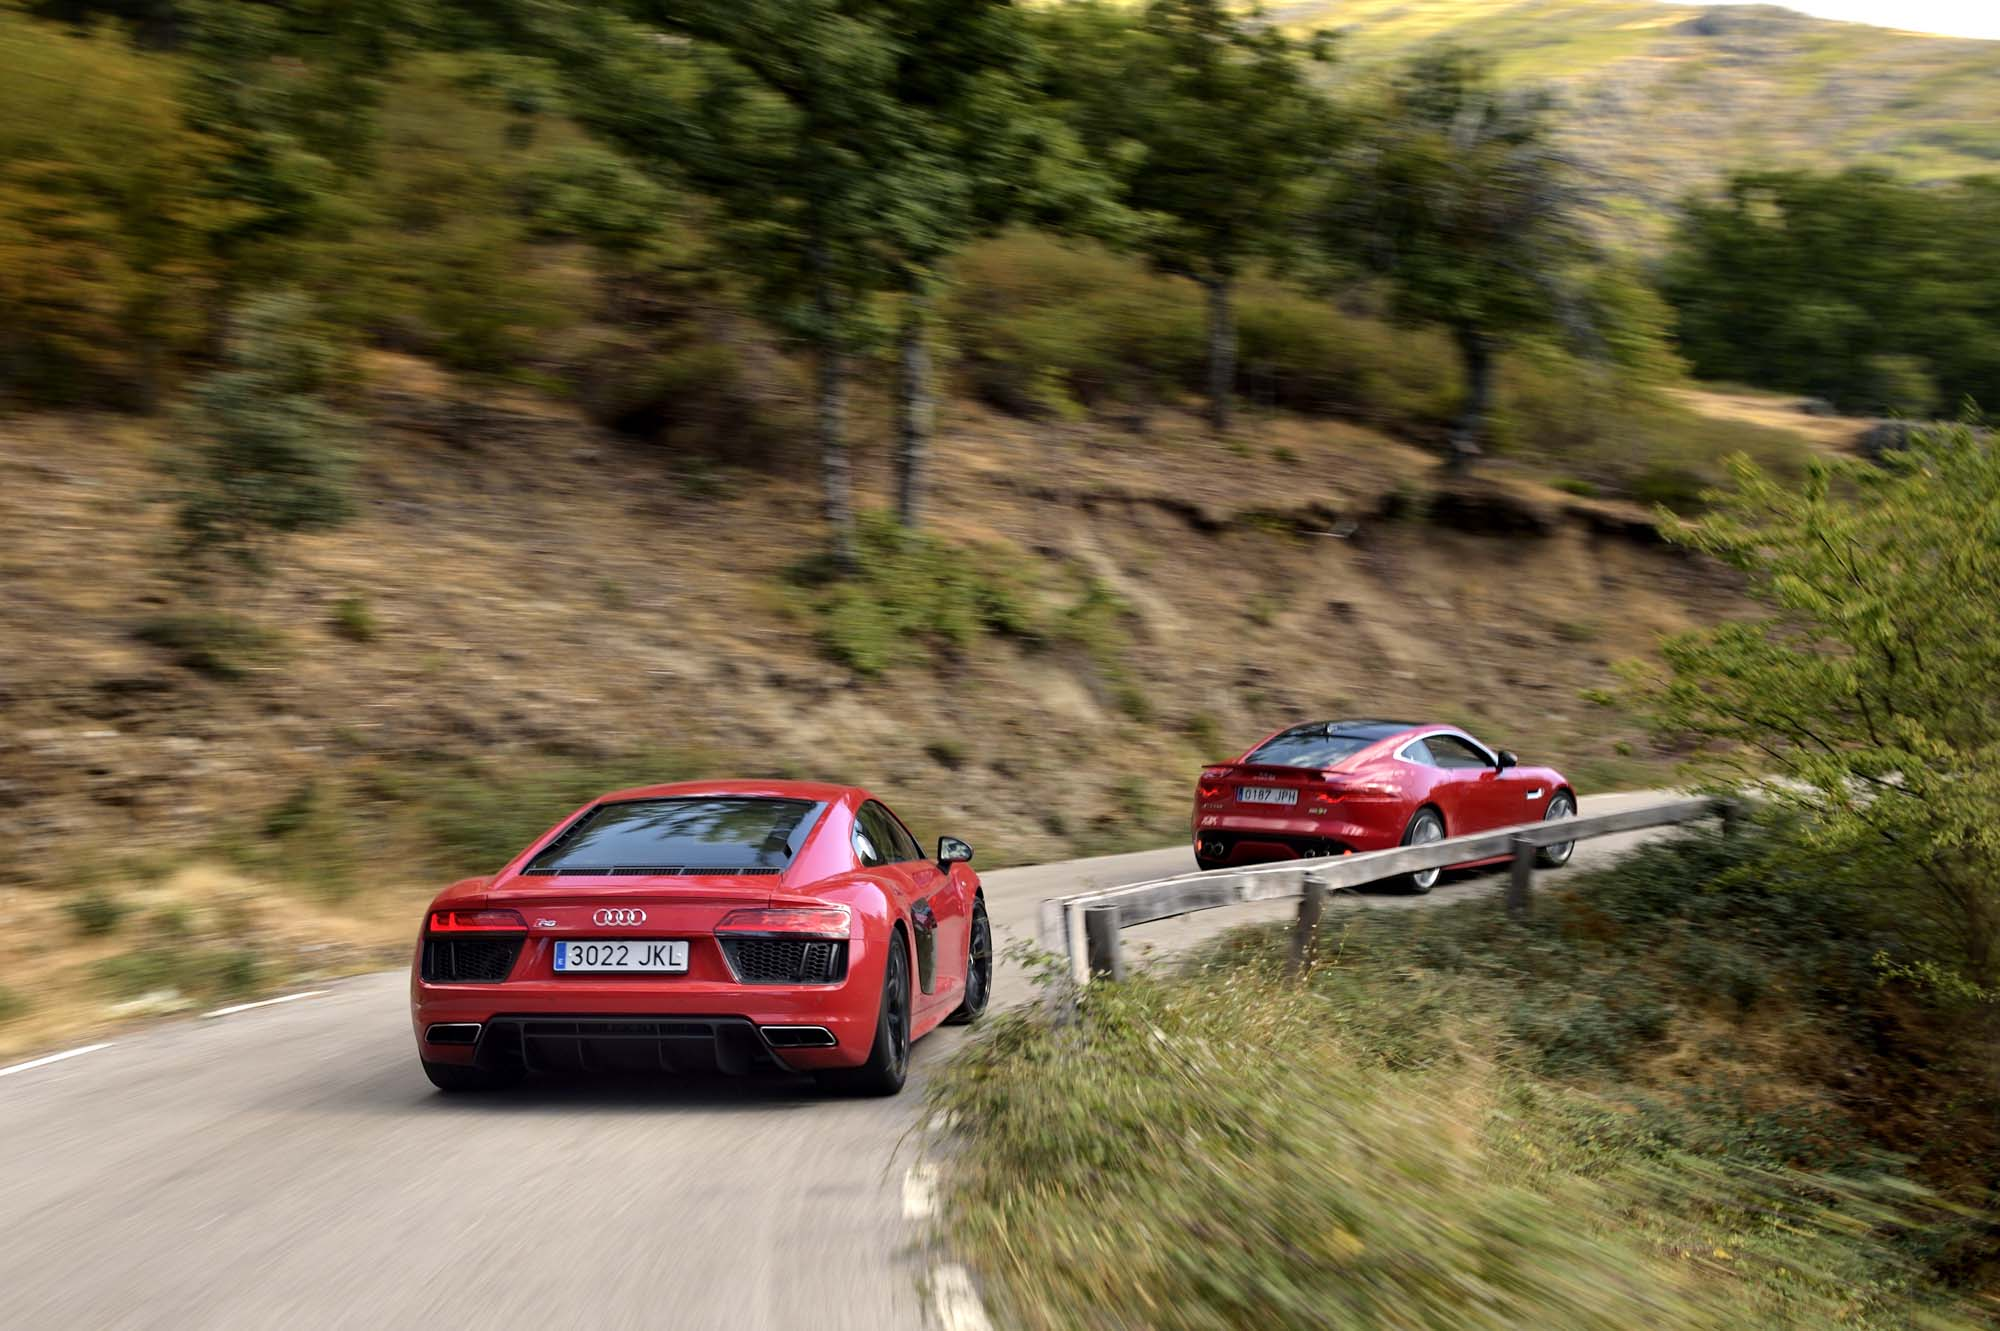 AUDI R8 V10 vs JAGUAR F-TYPE R